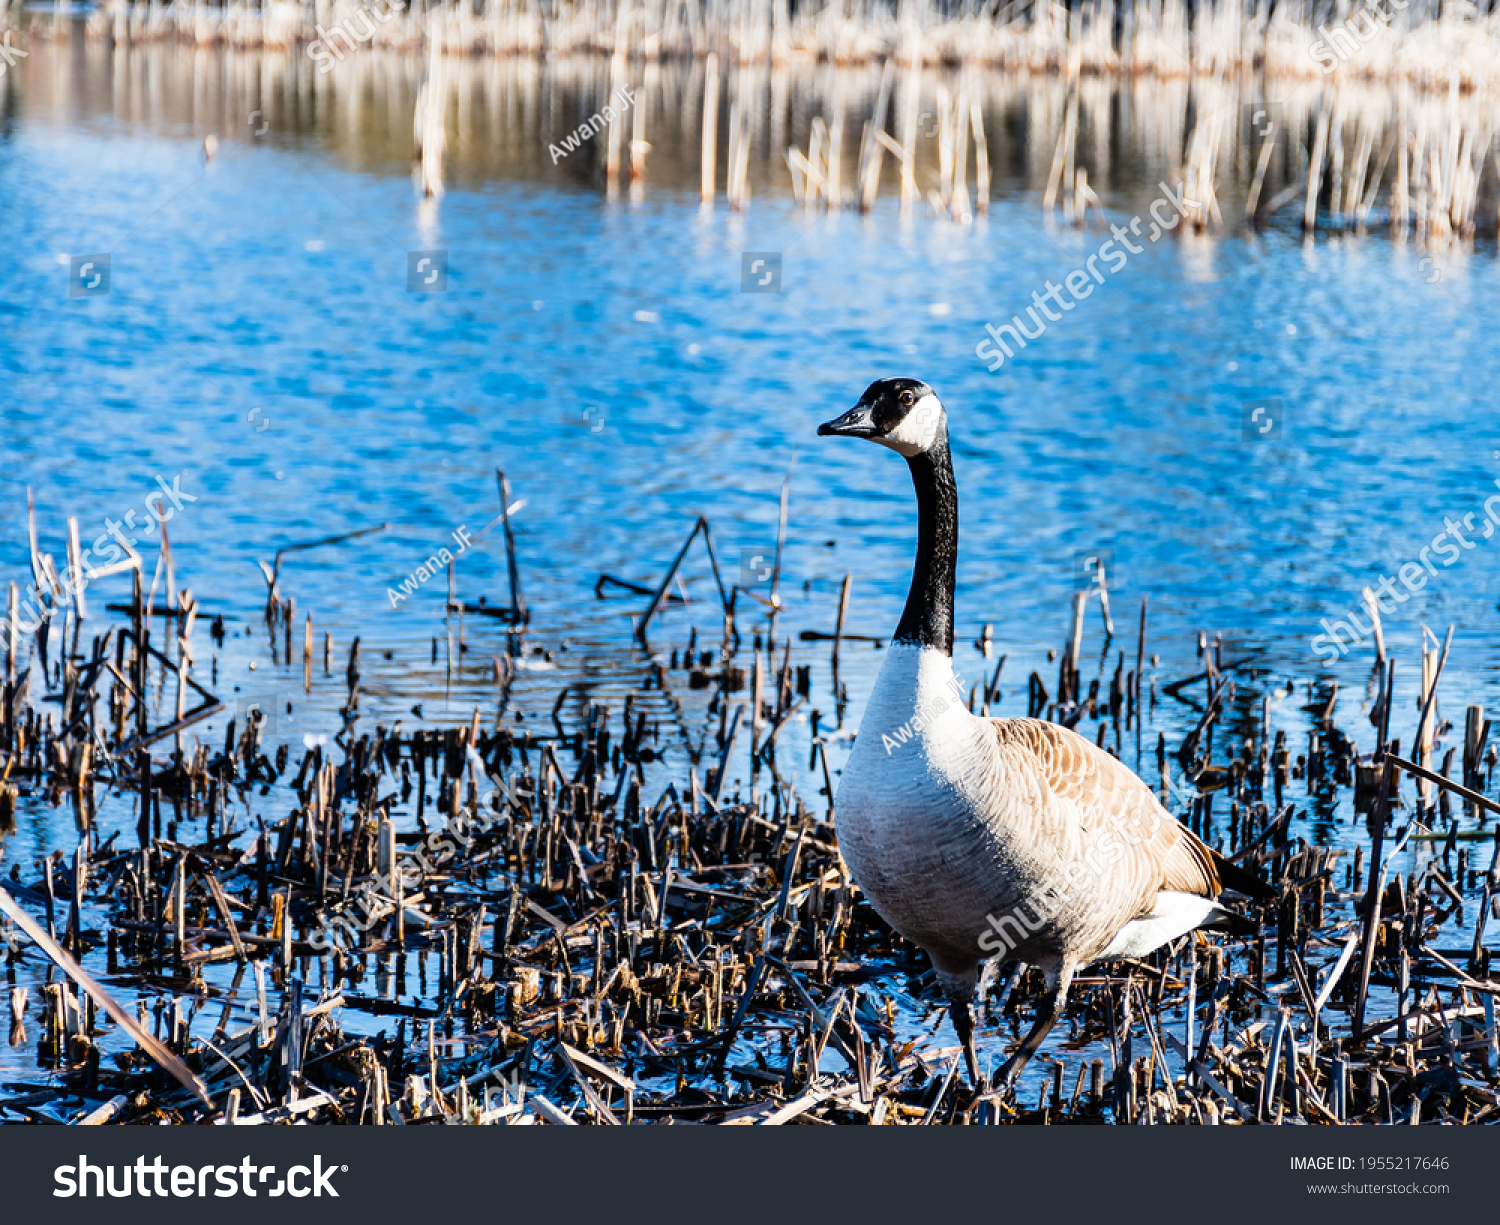 stock-photo-view-of-a-canadian-goose-sta